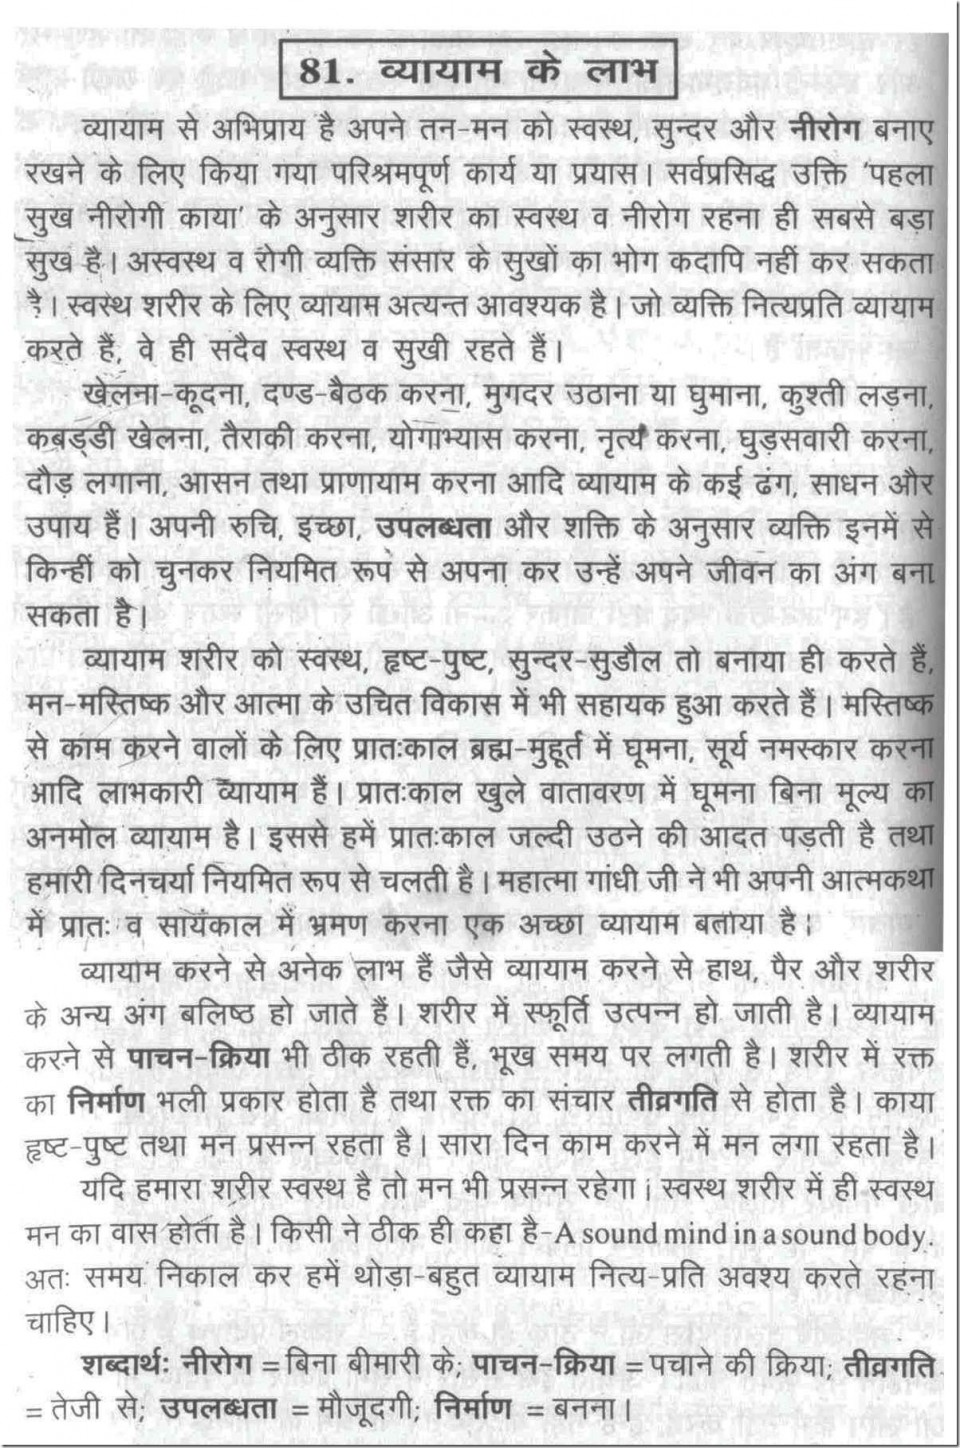 011 2563478896 Essay On Health And Fitness Through Food Good Habits In Hindi Exceptional Bad Eating Habit 960